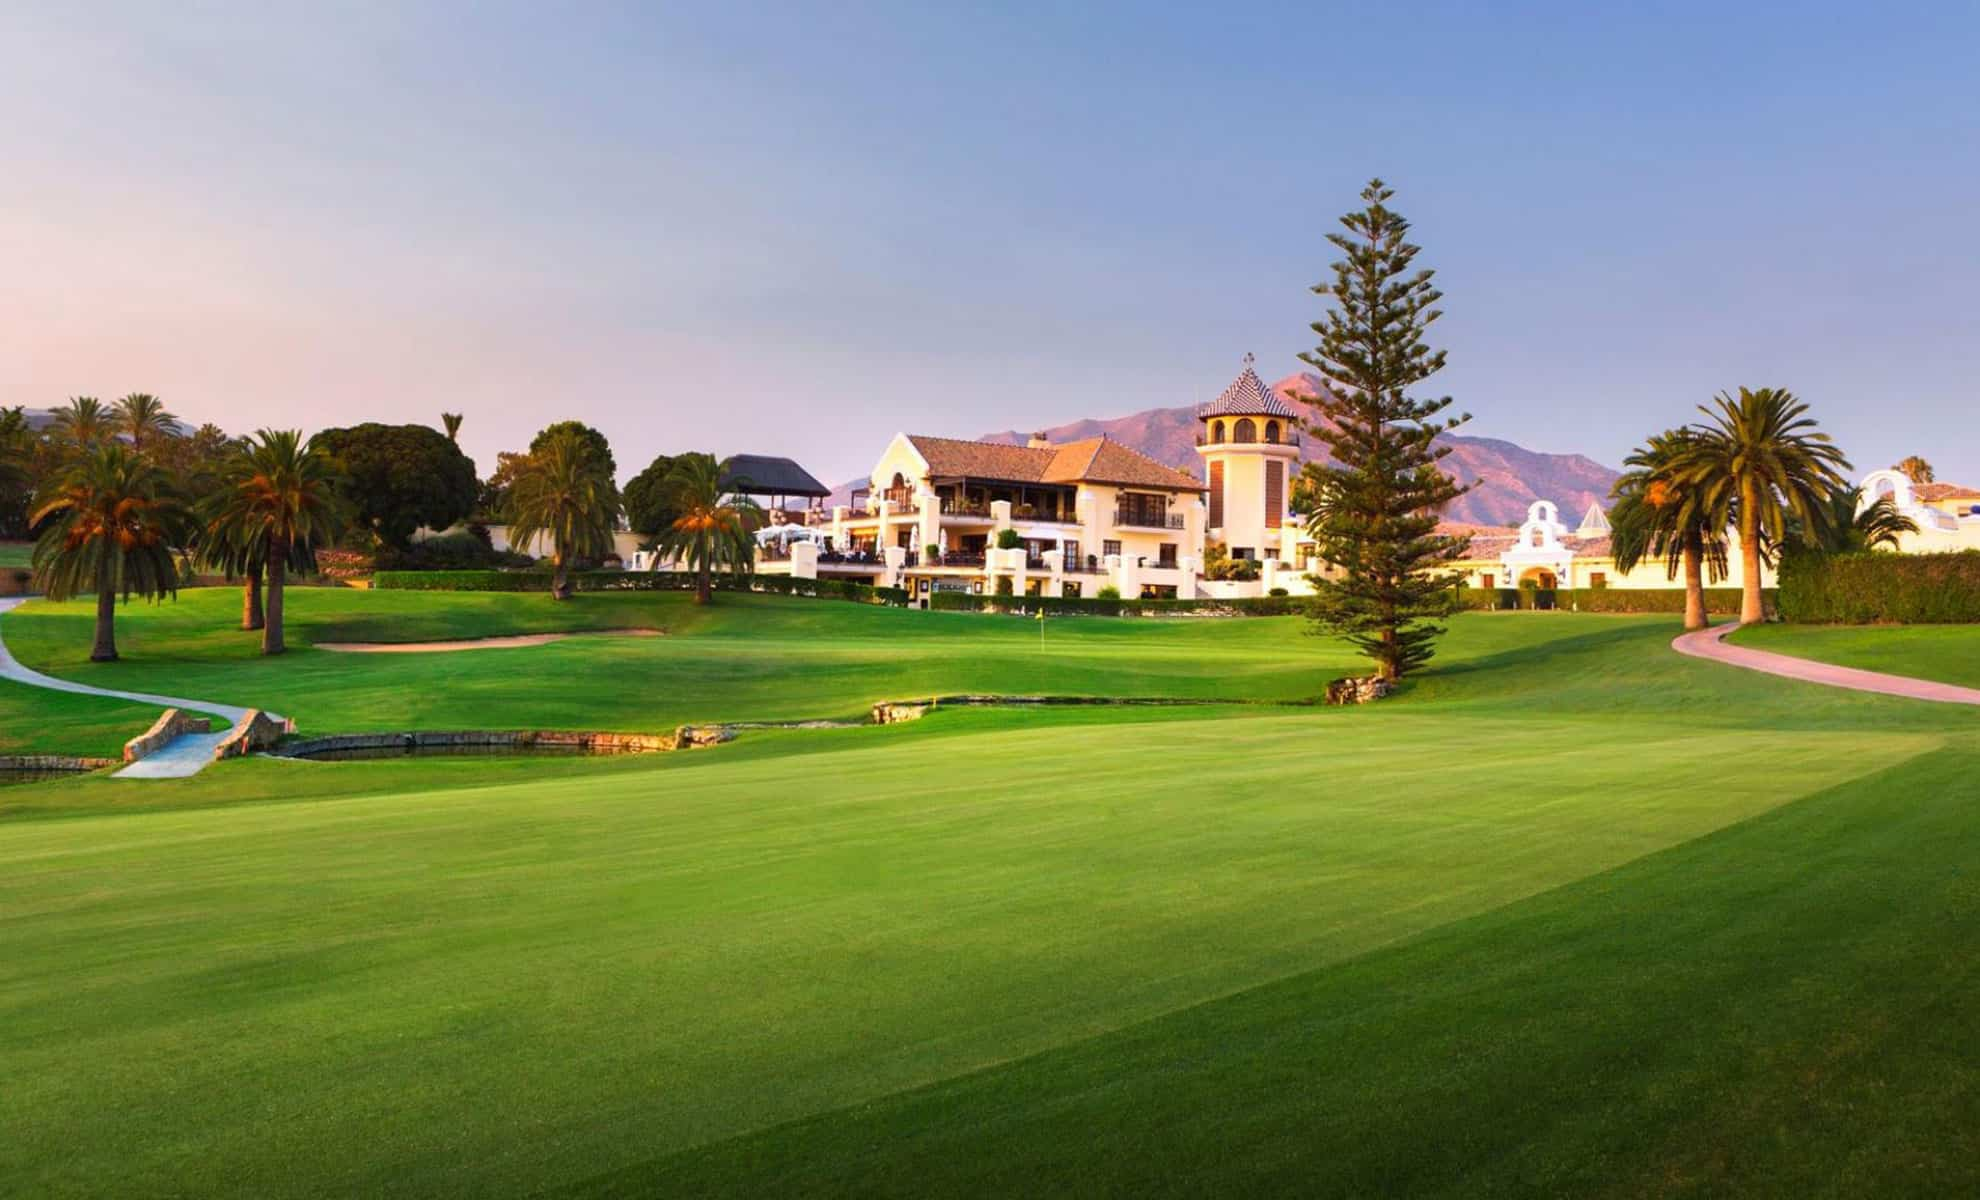 Los Naranjos Golf Club Costa del sol